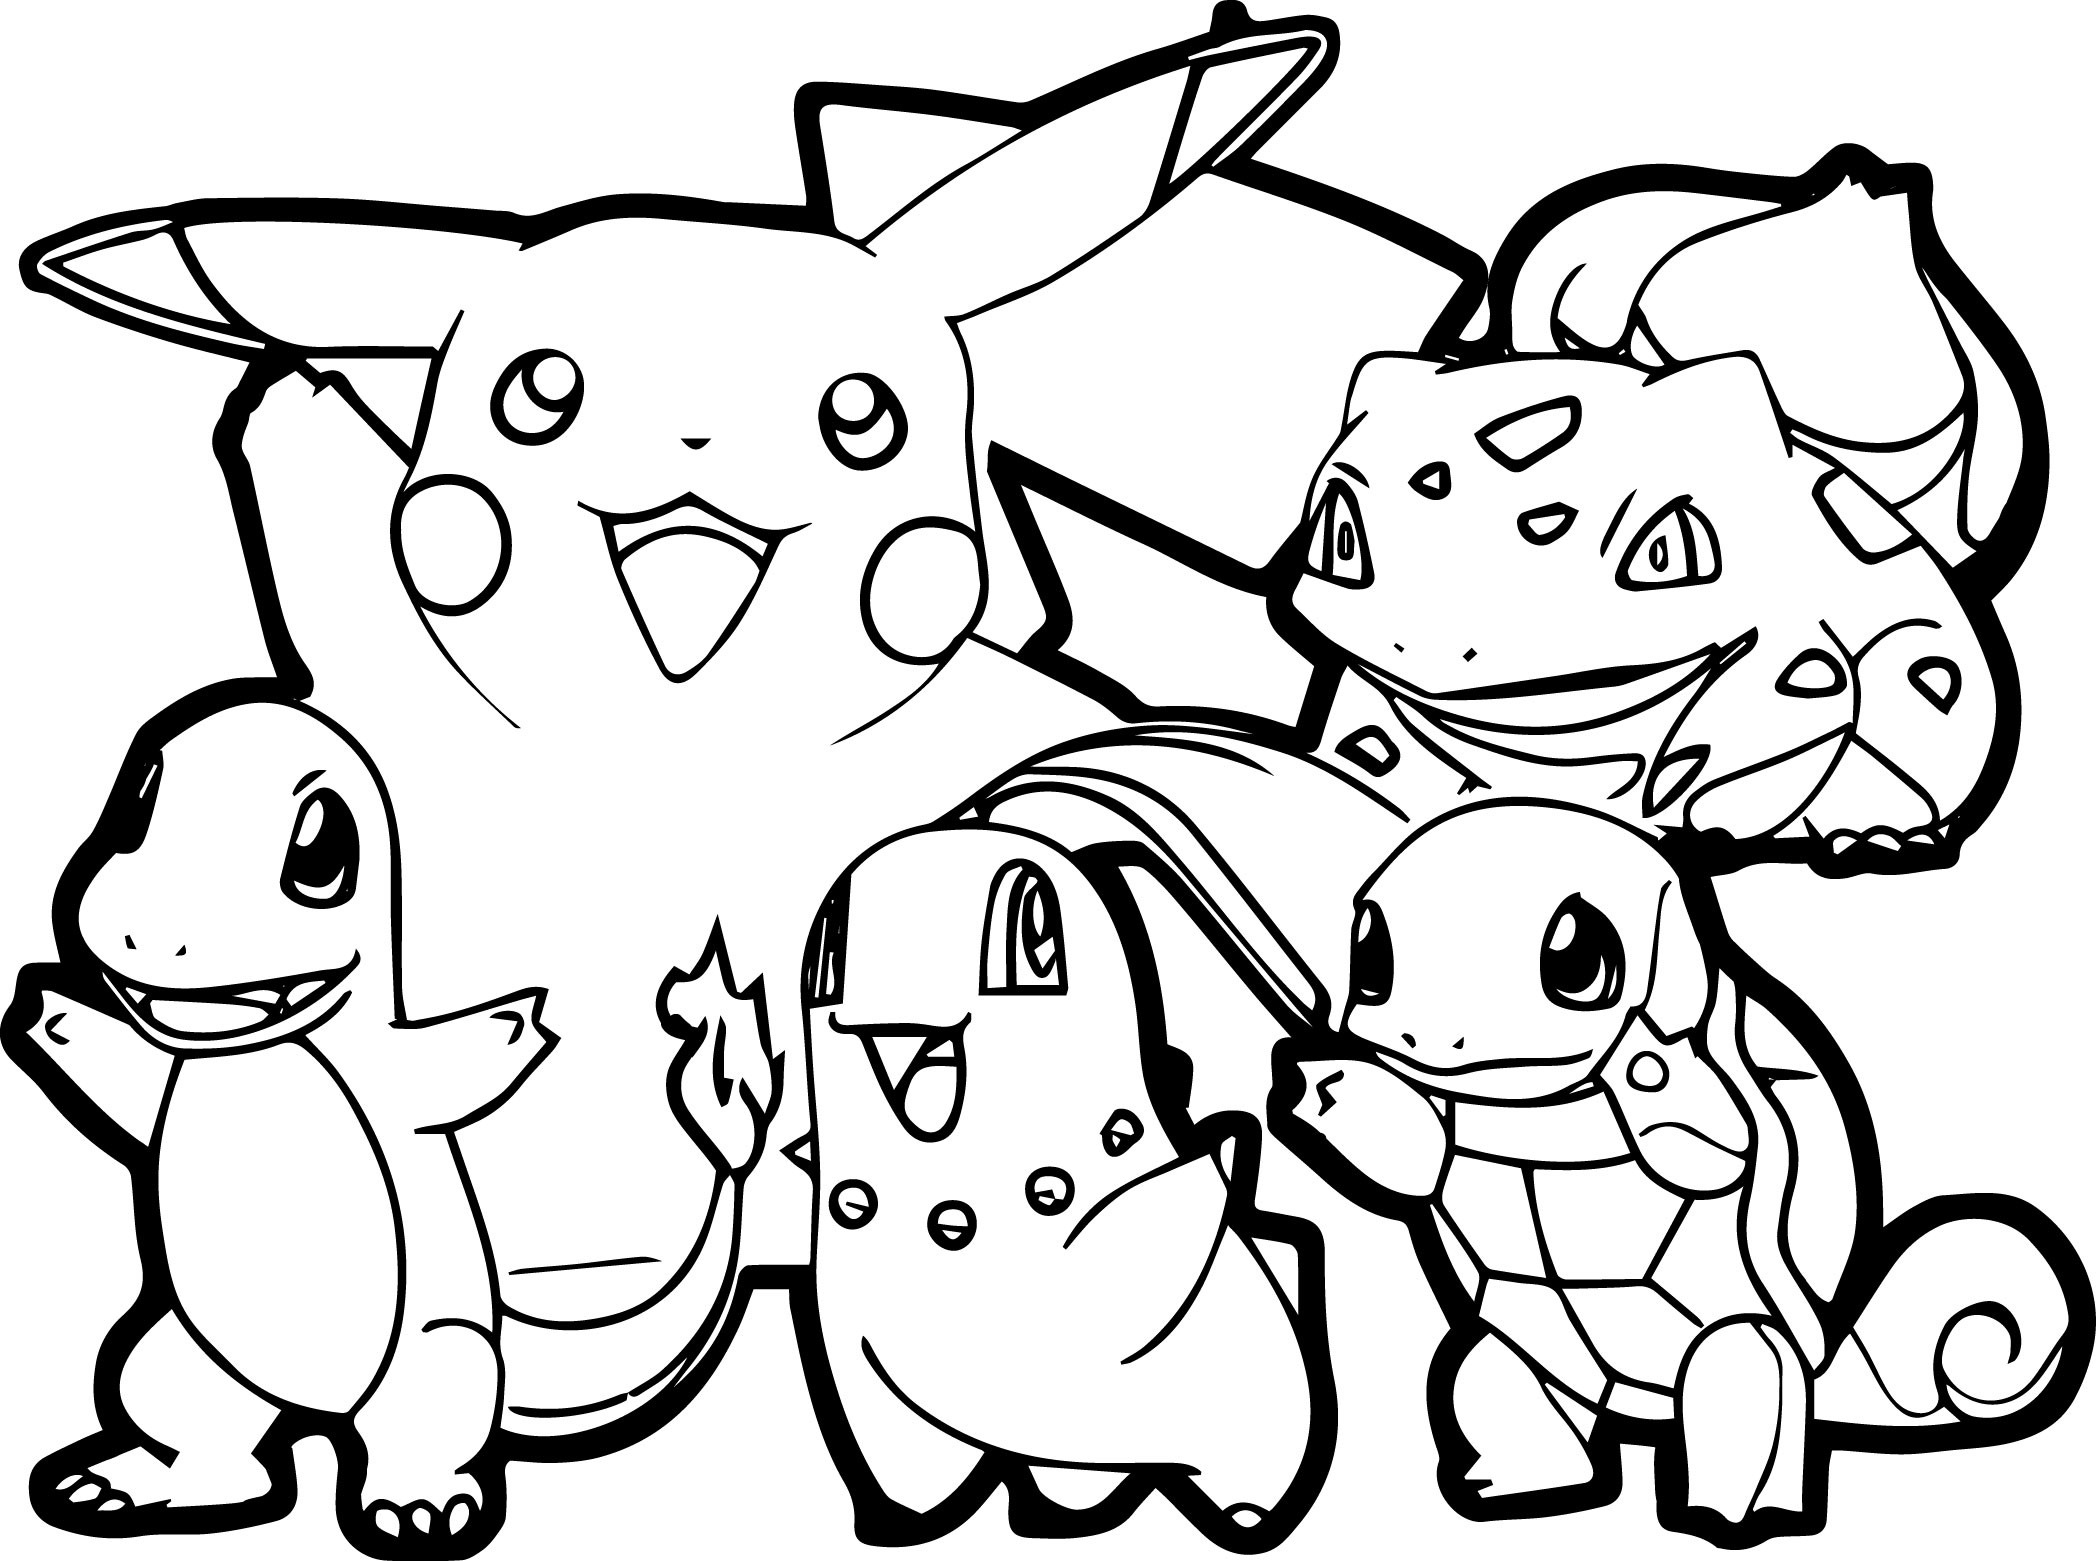 2096x1561 Pokemon Coloring Pages Games Free Draw To Color